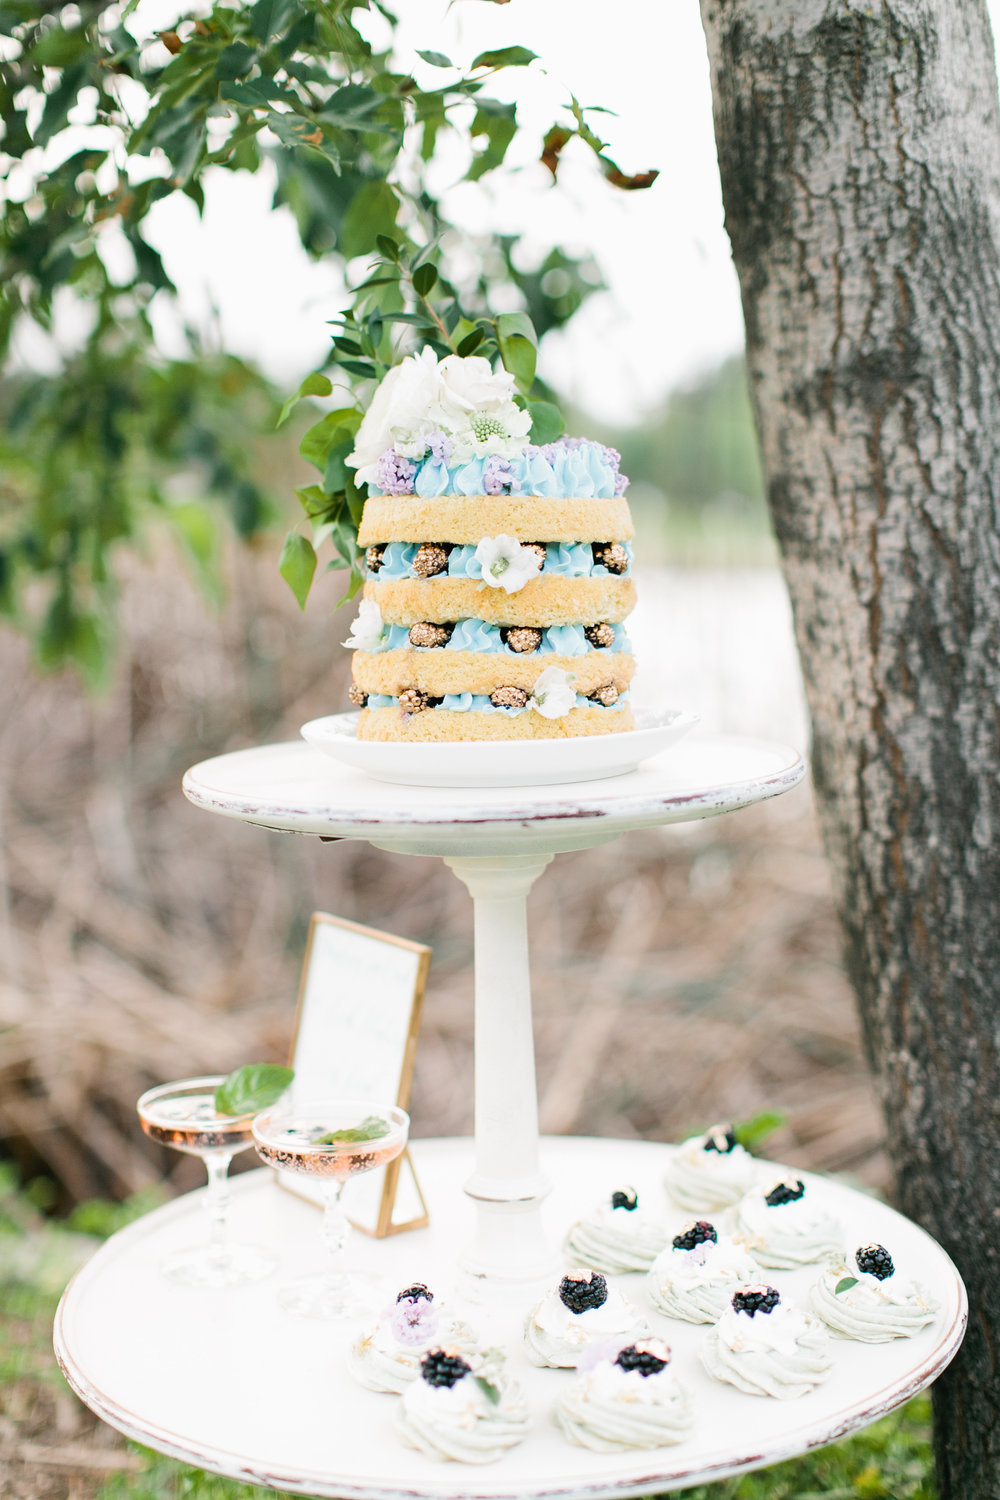 Naked sponge cake with bright blue buttercream, gold blackberries, fresh florals. Photo: Sorella Muse